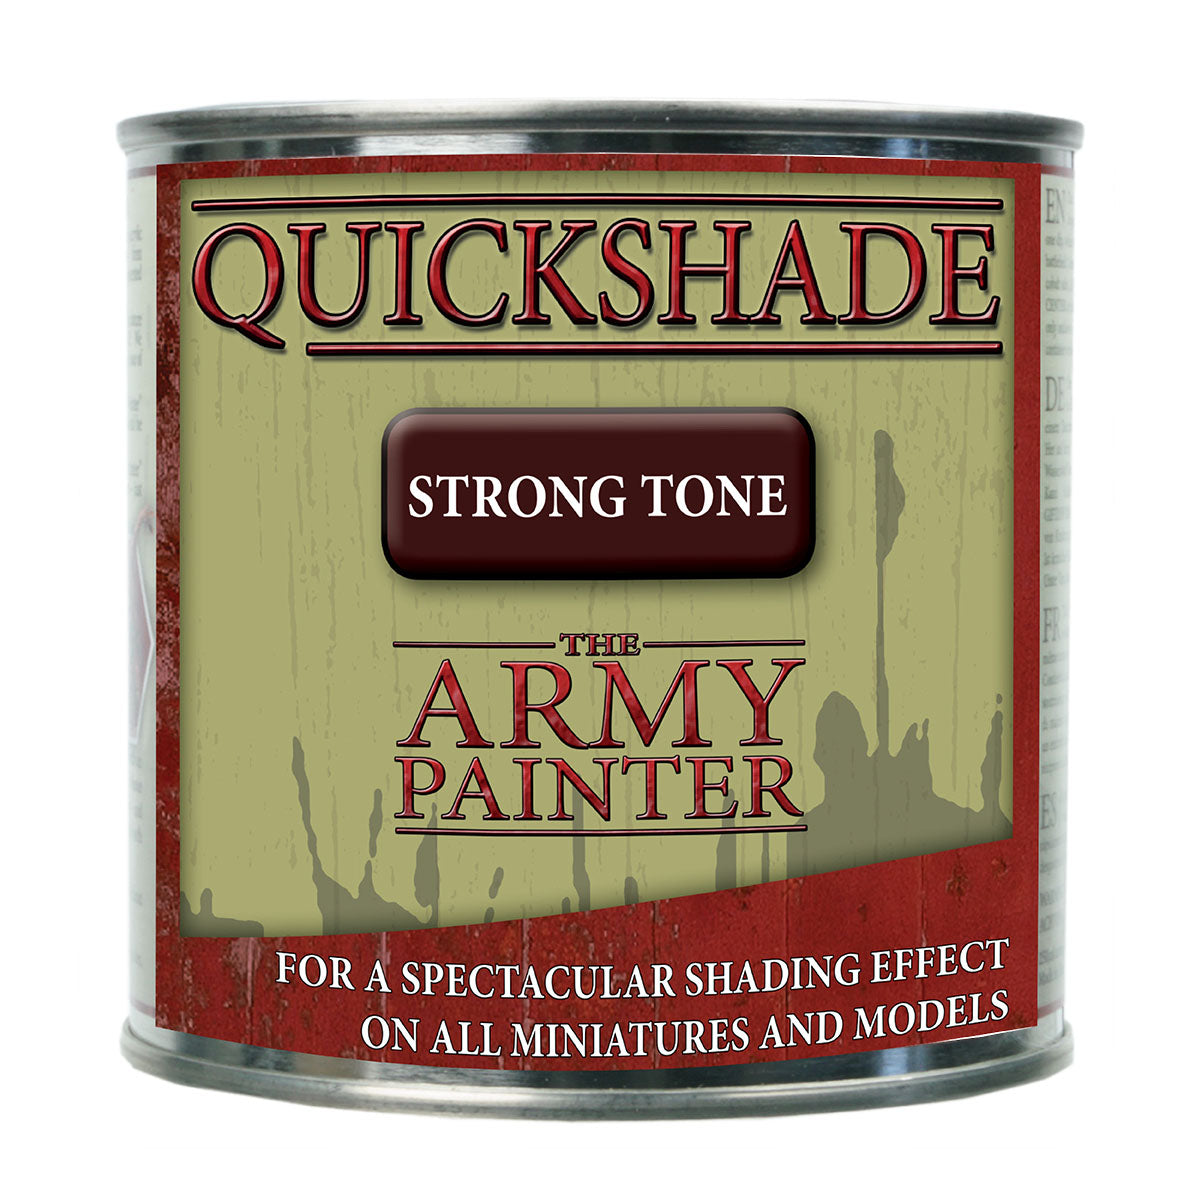 The Army Painter Quickshade Strong Tone | Mythicos